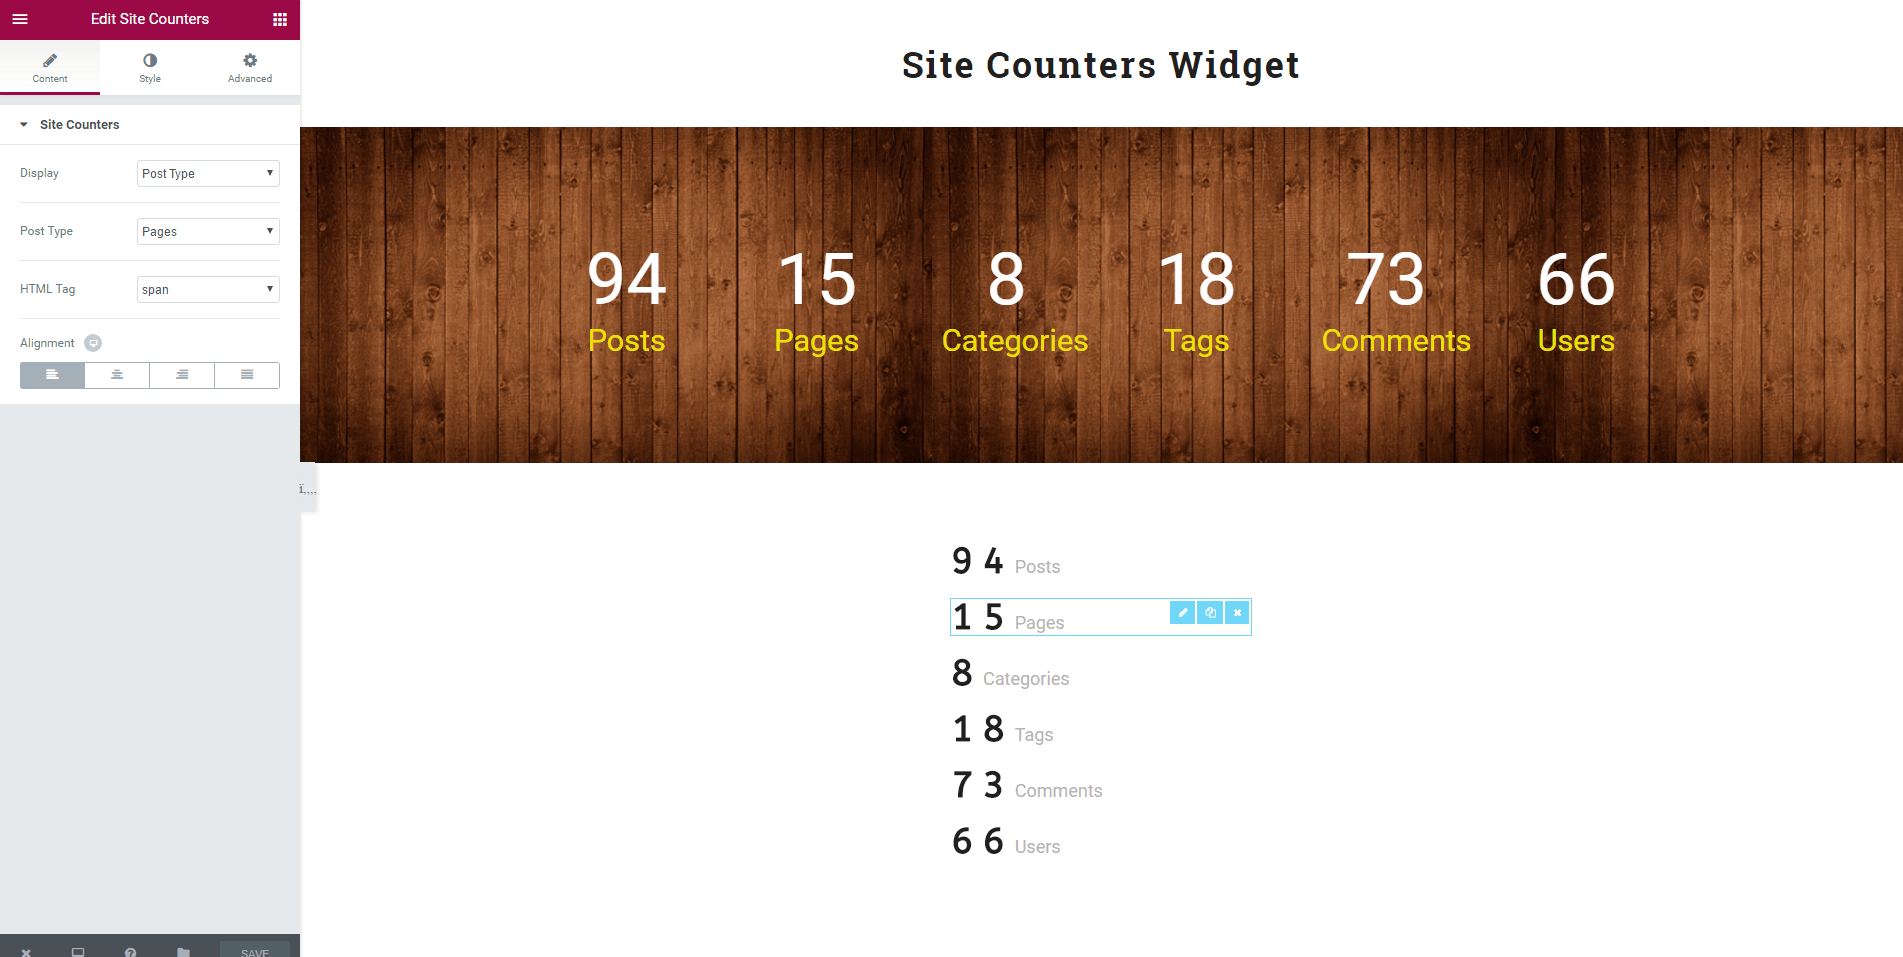 Site counters for Post Types, Taxonomies, Comments and Users.